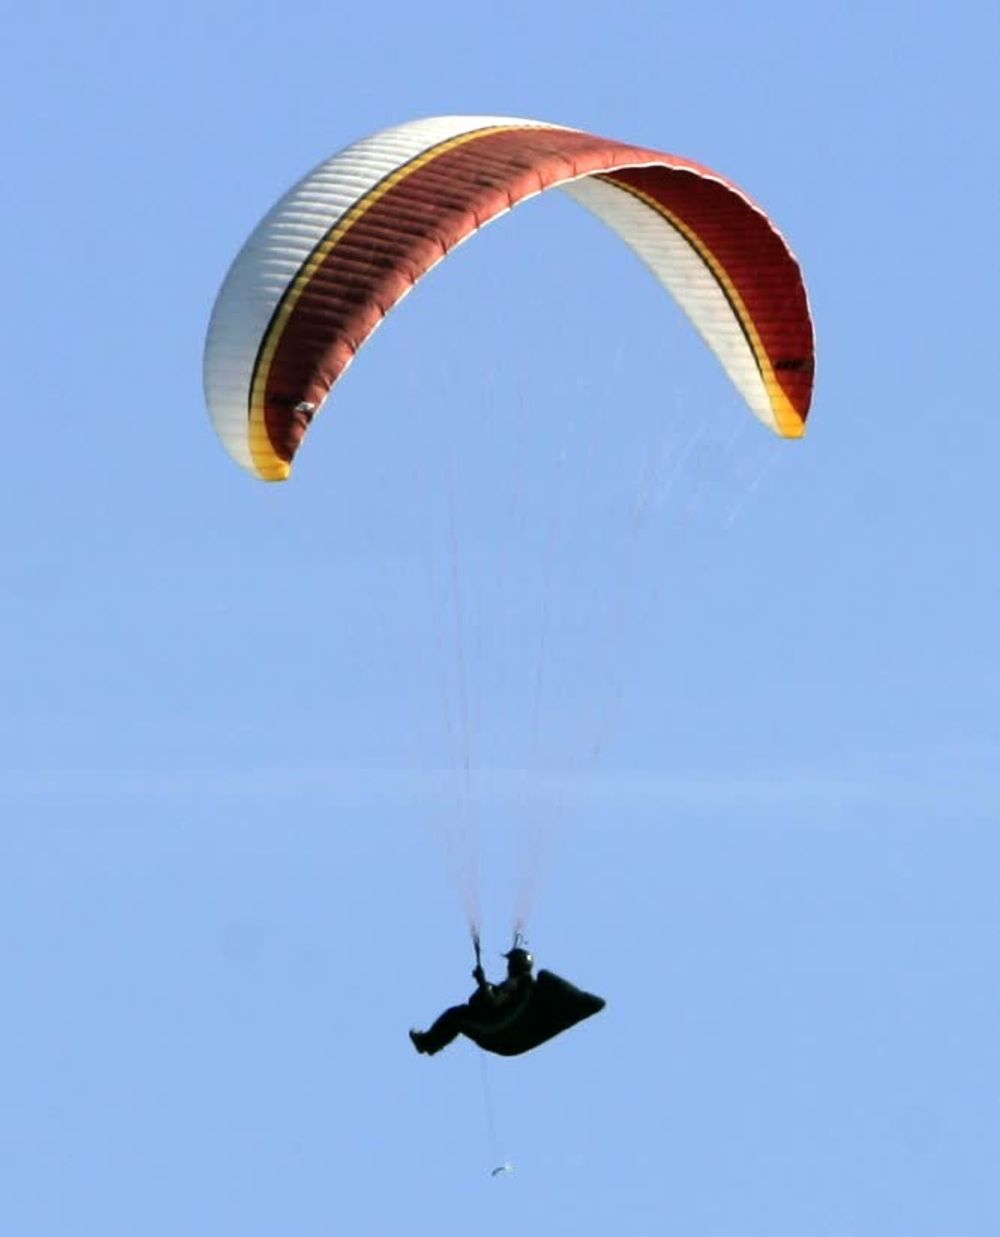 Paragliding at Santa Barbara